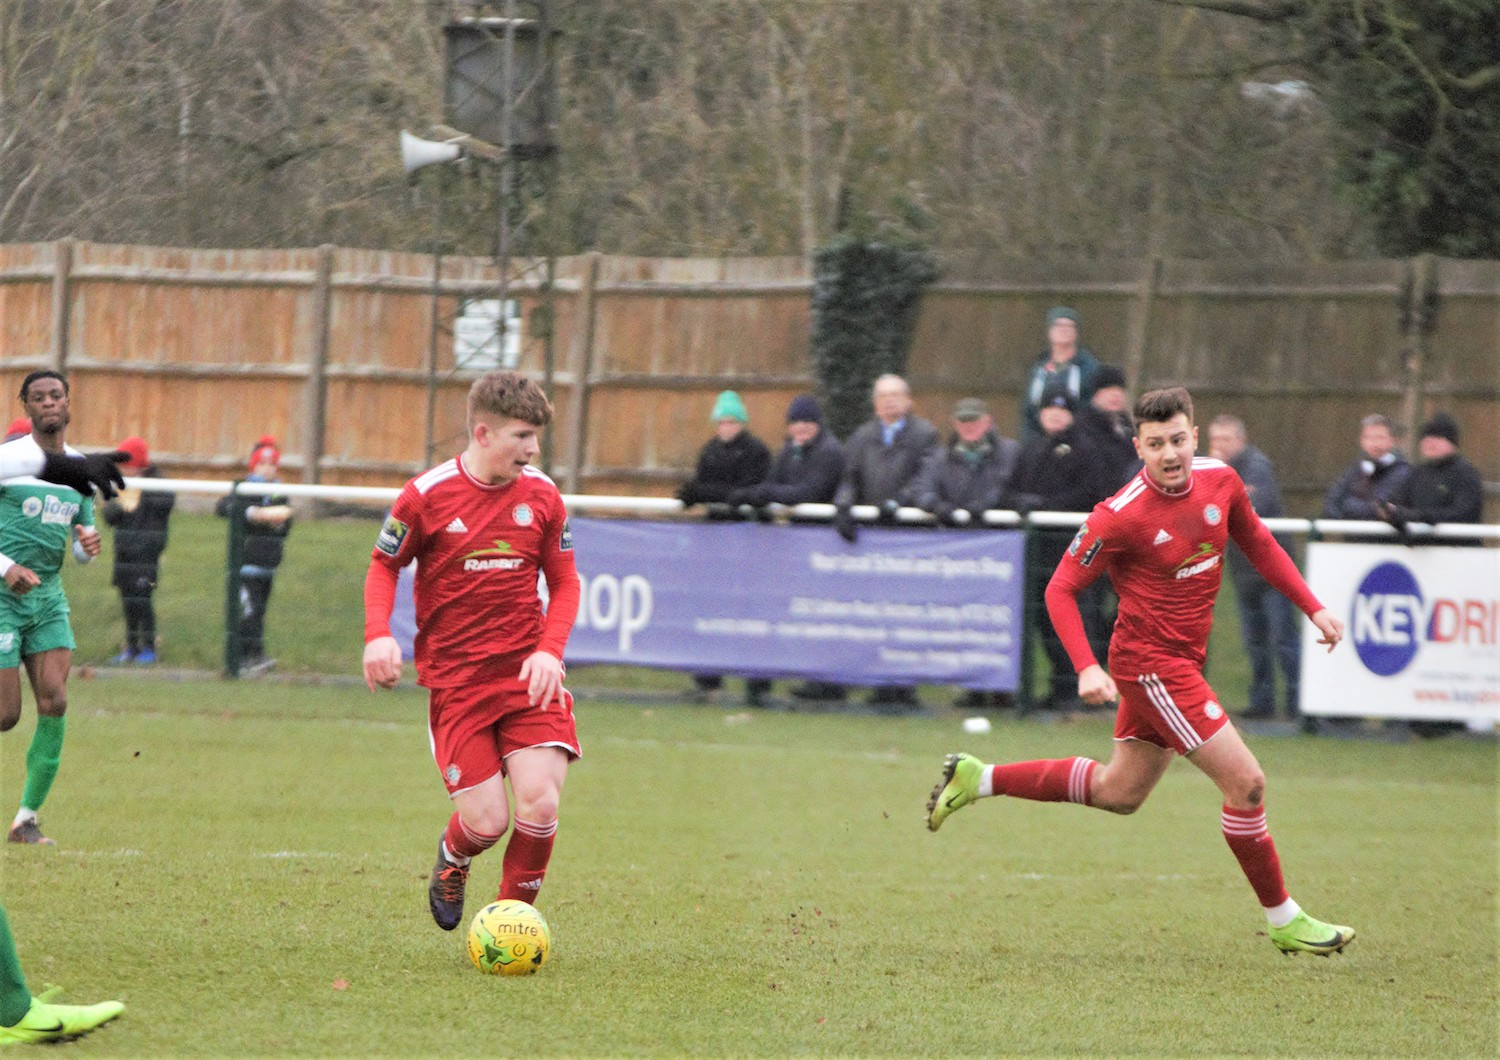 Read the full article - Worthing Shoot Themselves In The Foot Again